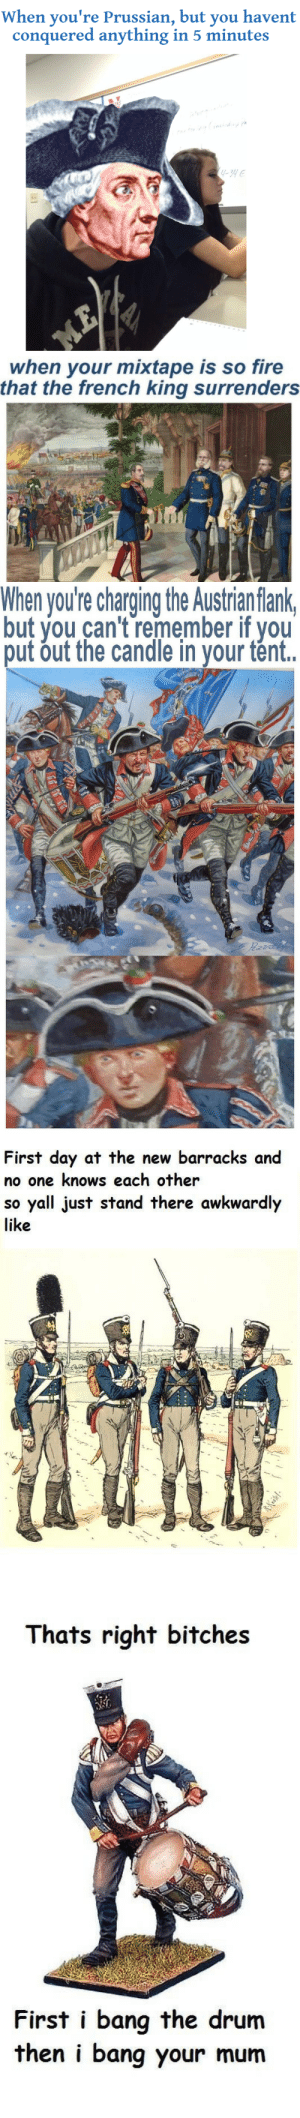 Fire, Memes, and Tumblr: When you're Prussian, but you havent  conquered anything in 5 minutes   when your mixtape is so fire  that the french king surrenders   When you're charging the Austrian flank  but you can't remember if you  put out the candle in your tént.   First day at the new barracks and  no one knows each other  so yall just stand there awkwardly  like   Thats right bitches  First i bang the drum  then i bang your mum smellofhero:Prussian History Memes (None of these were made by me)